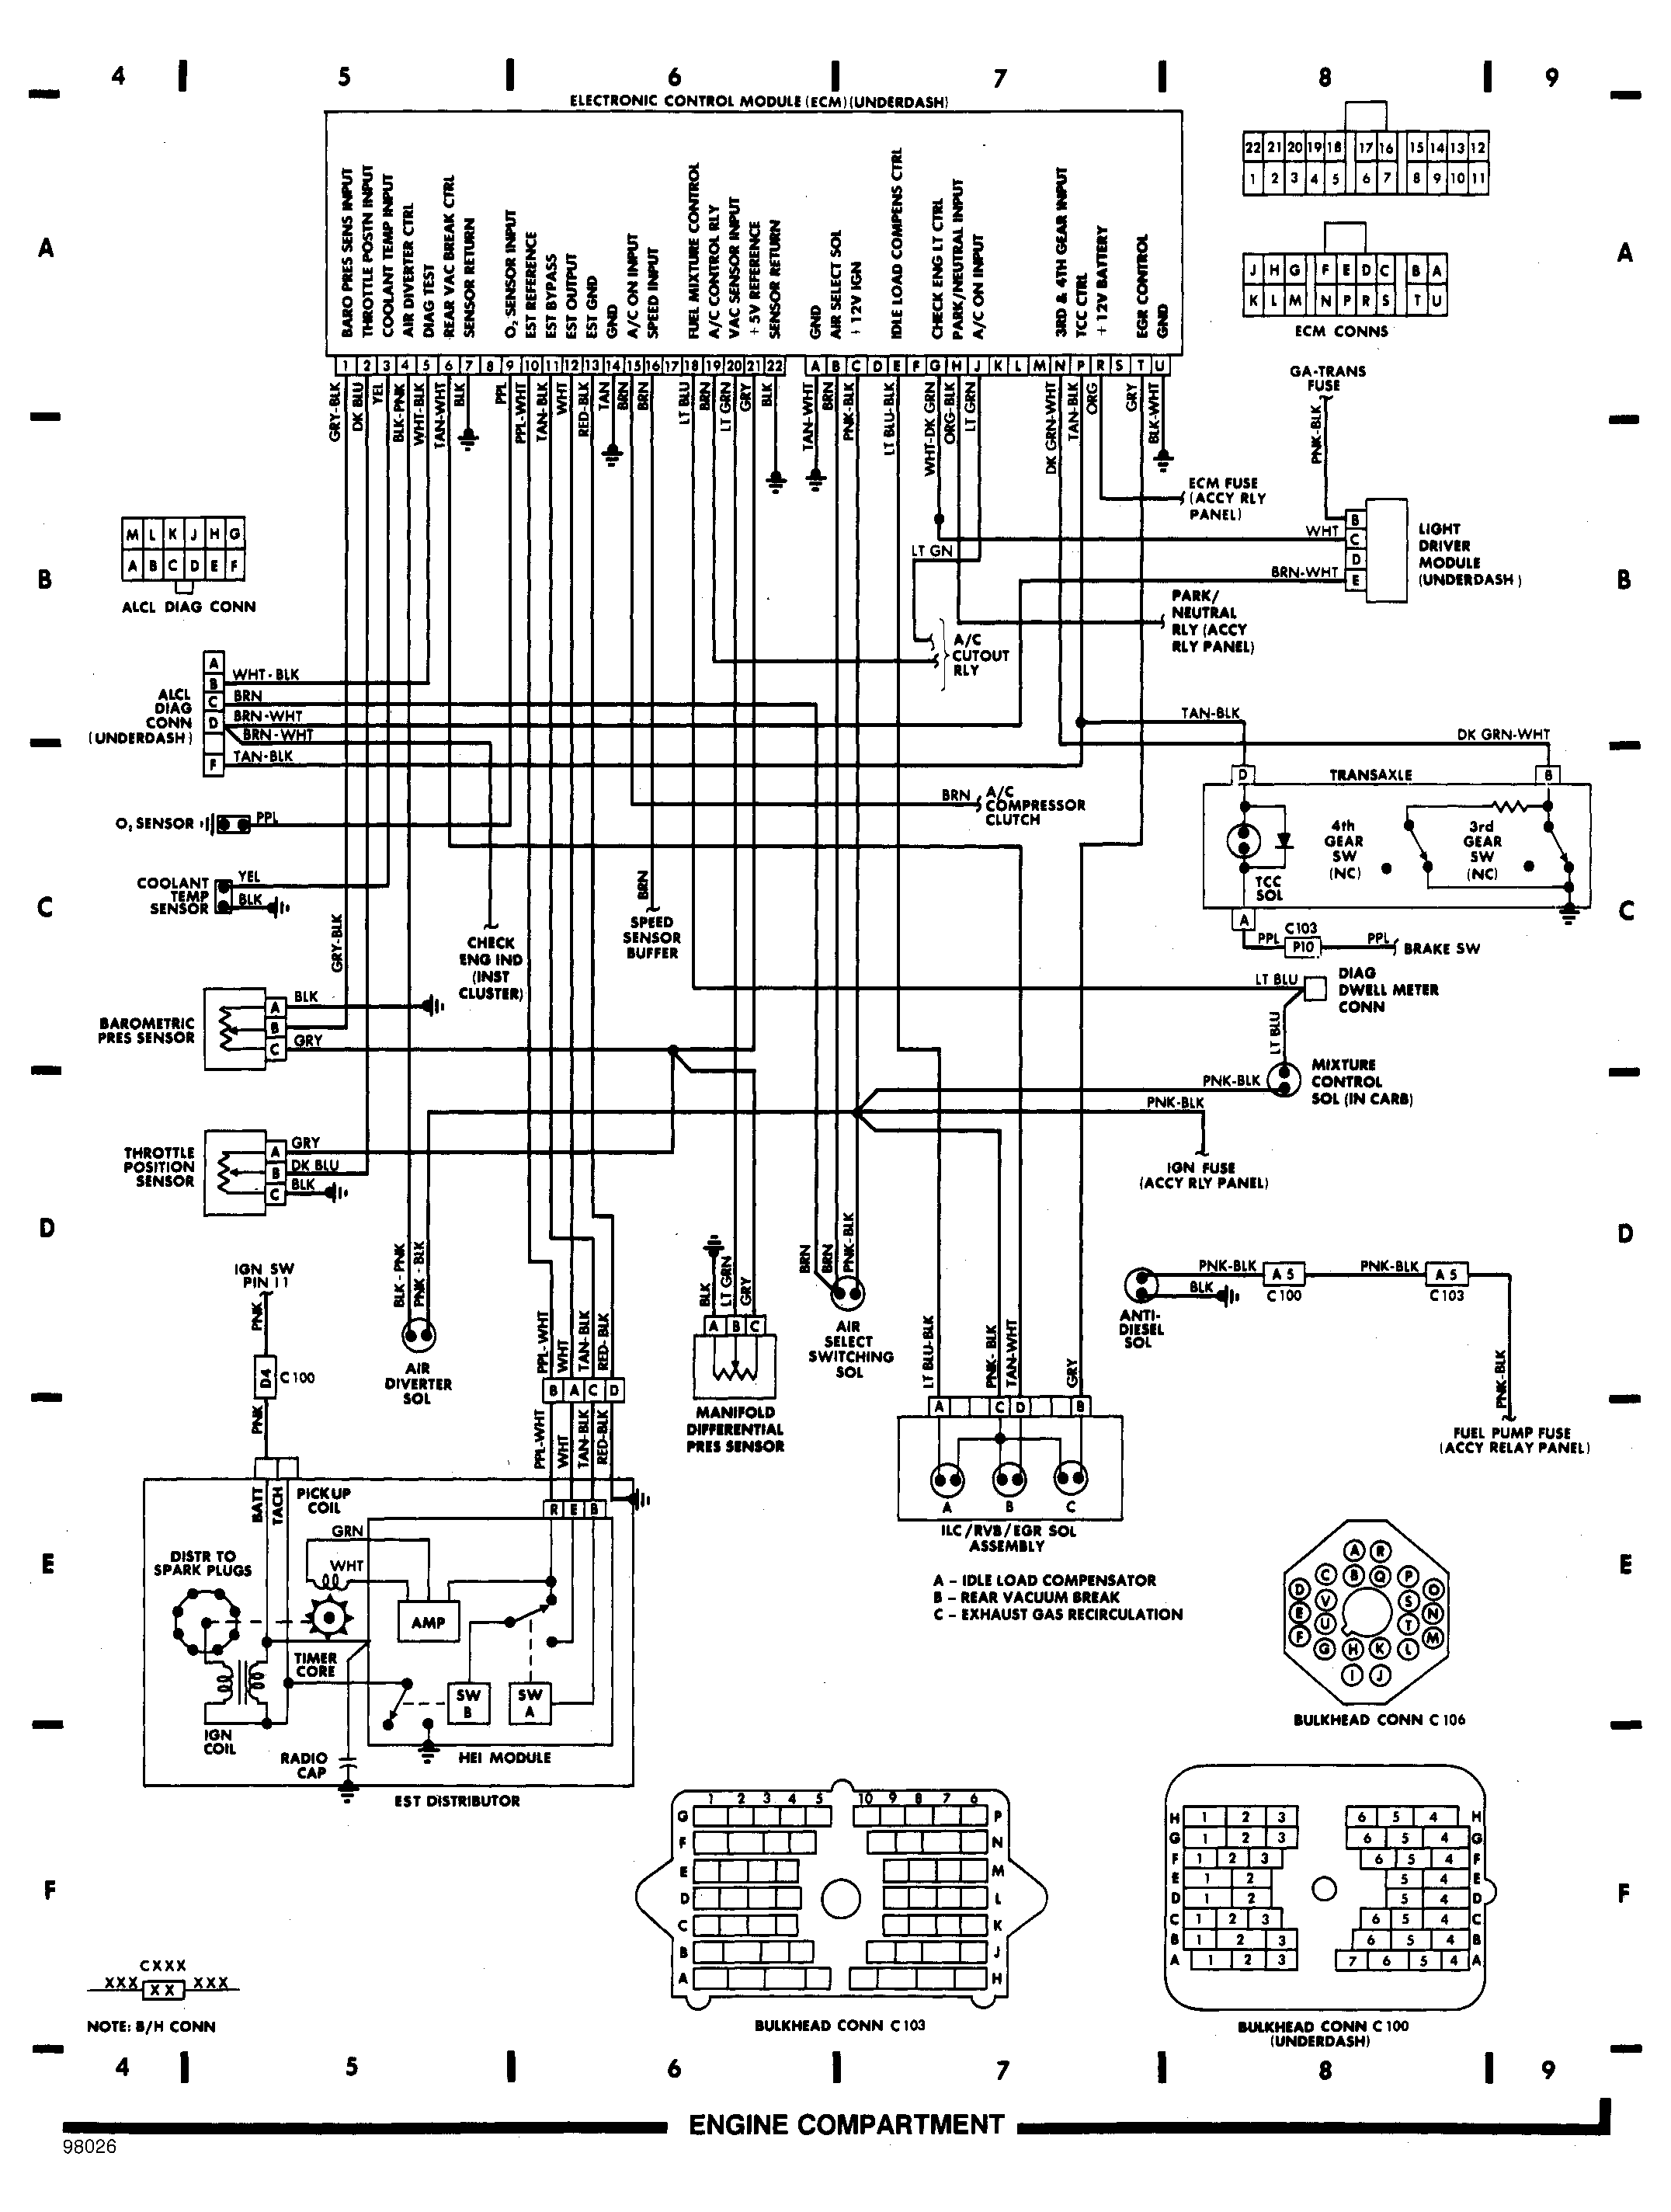 wiring diagrams engine compartment 2